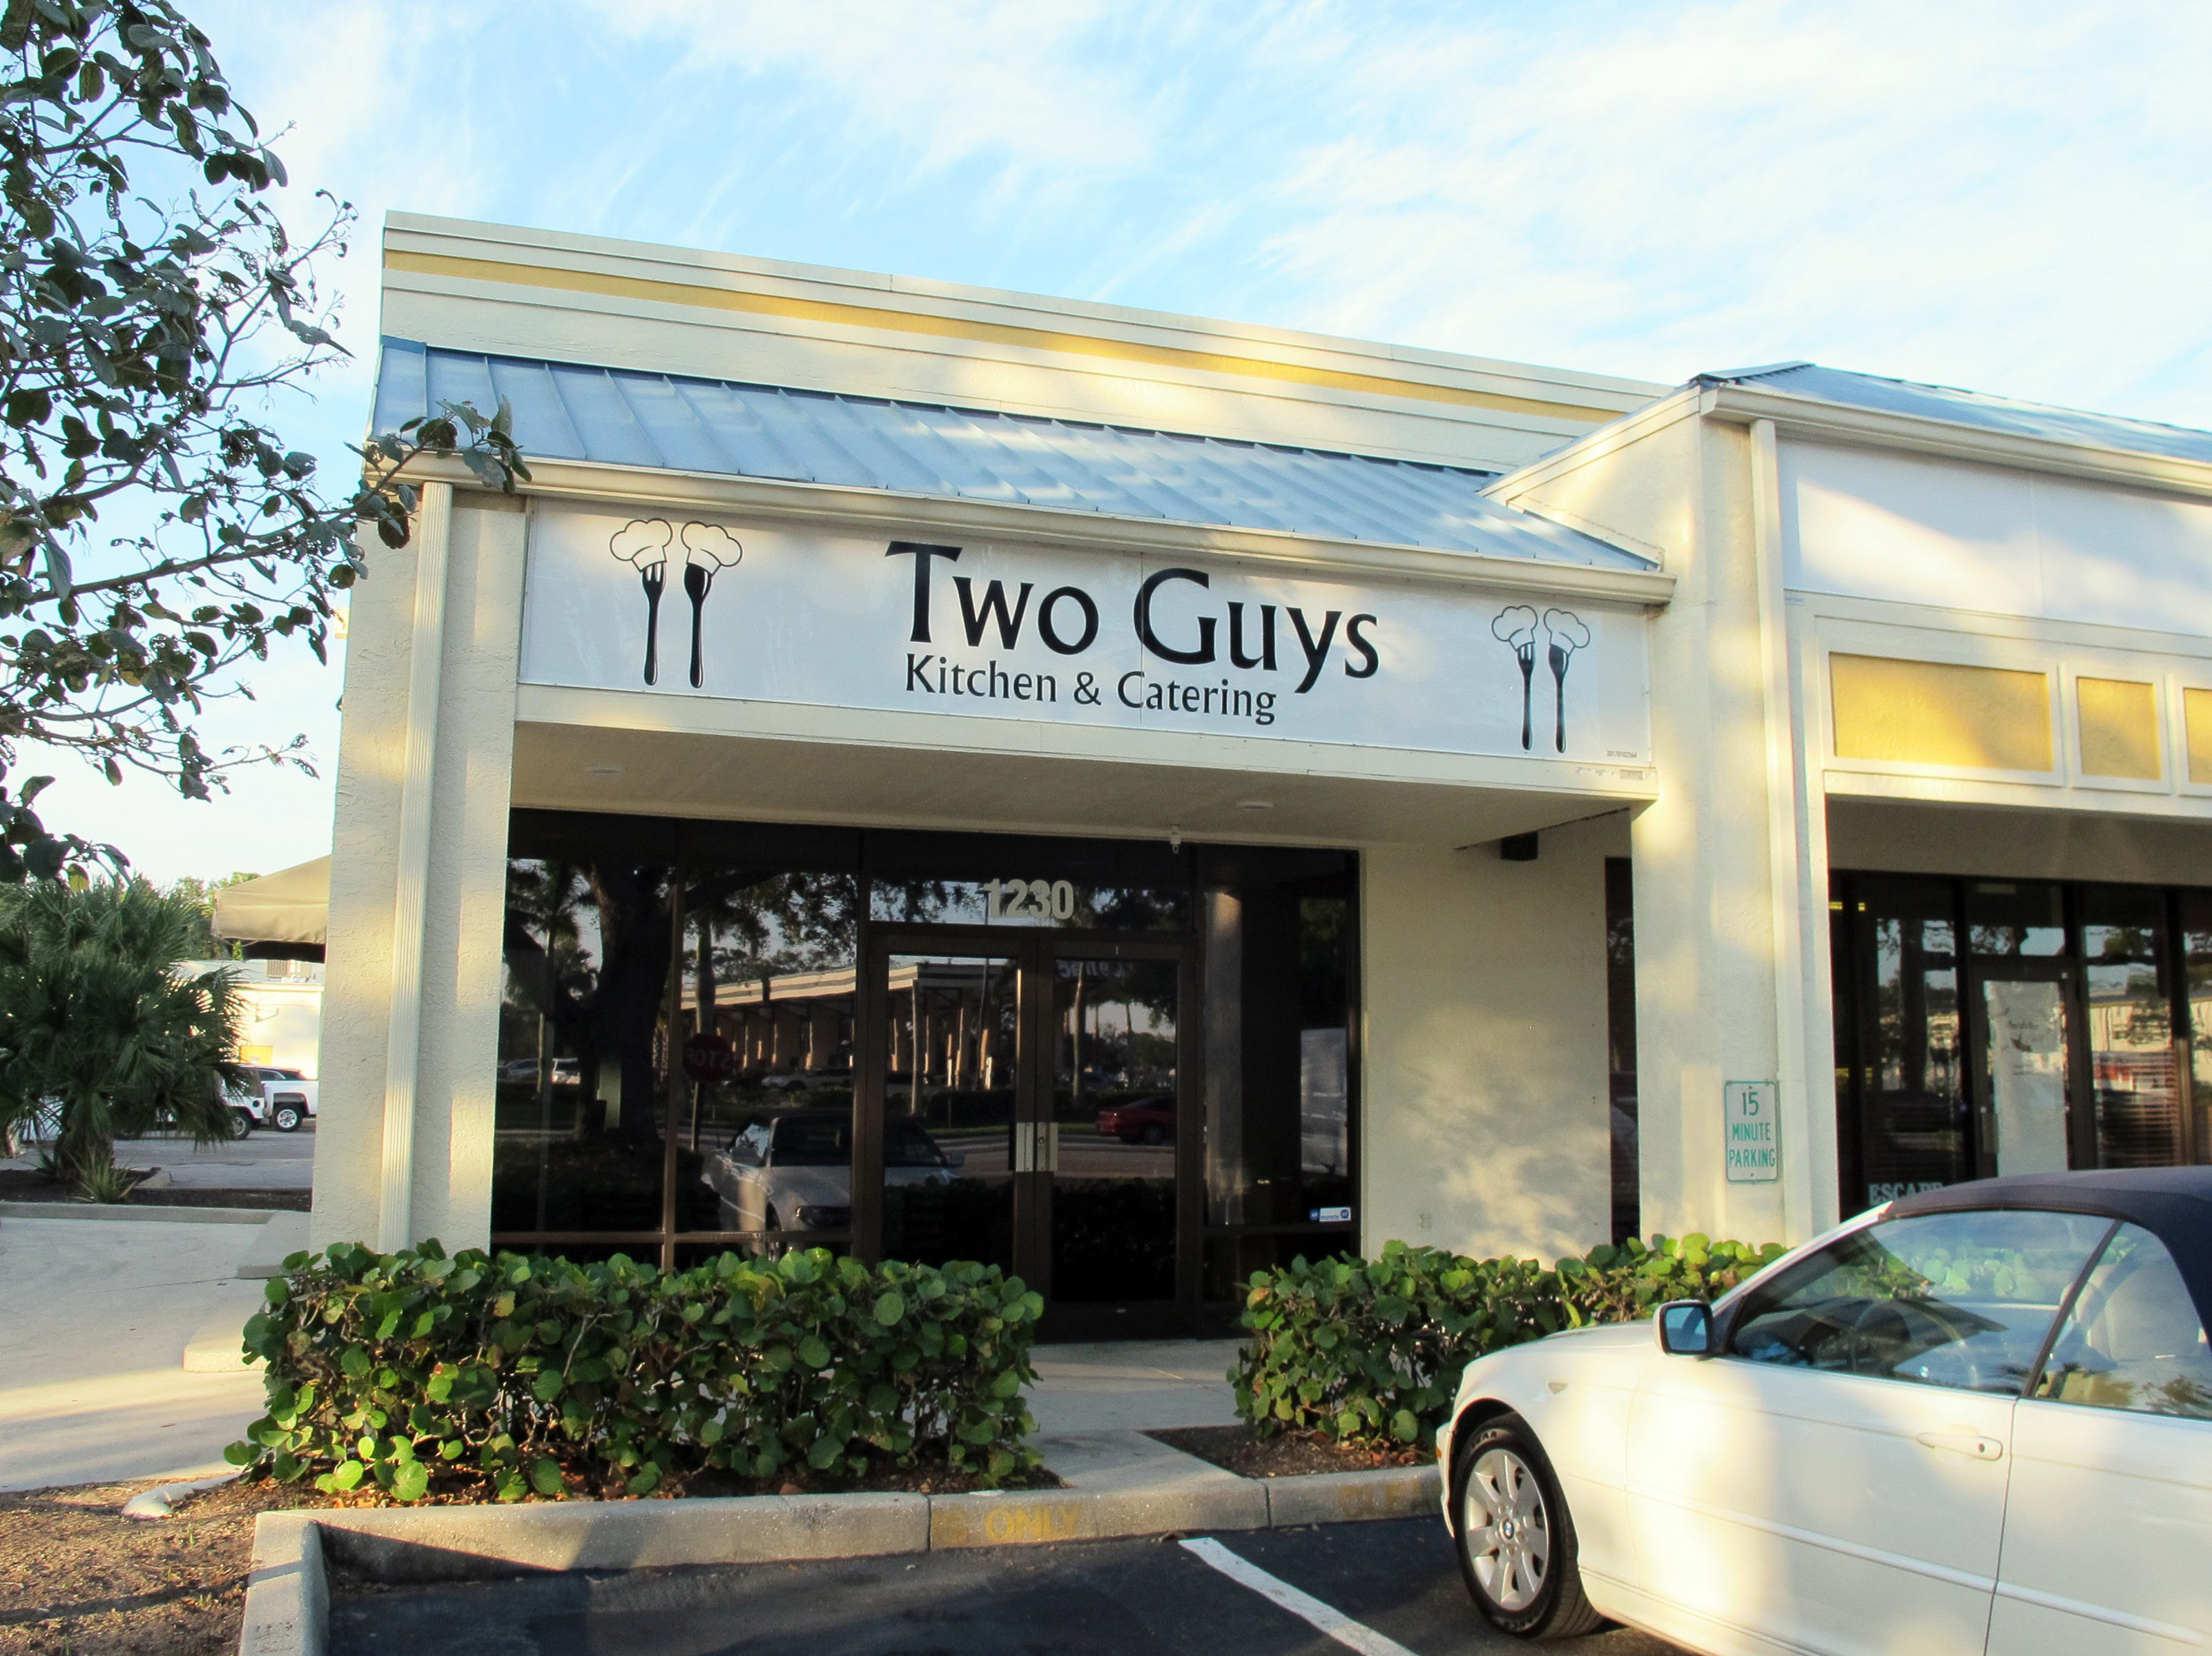 Two Guys Kitchen & Catering opened in February 2018 in River Reach Plaza off Airport-Pulling Road in East Naples.